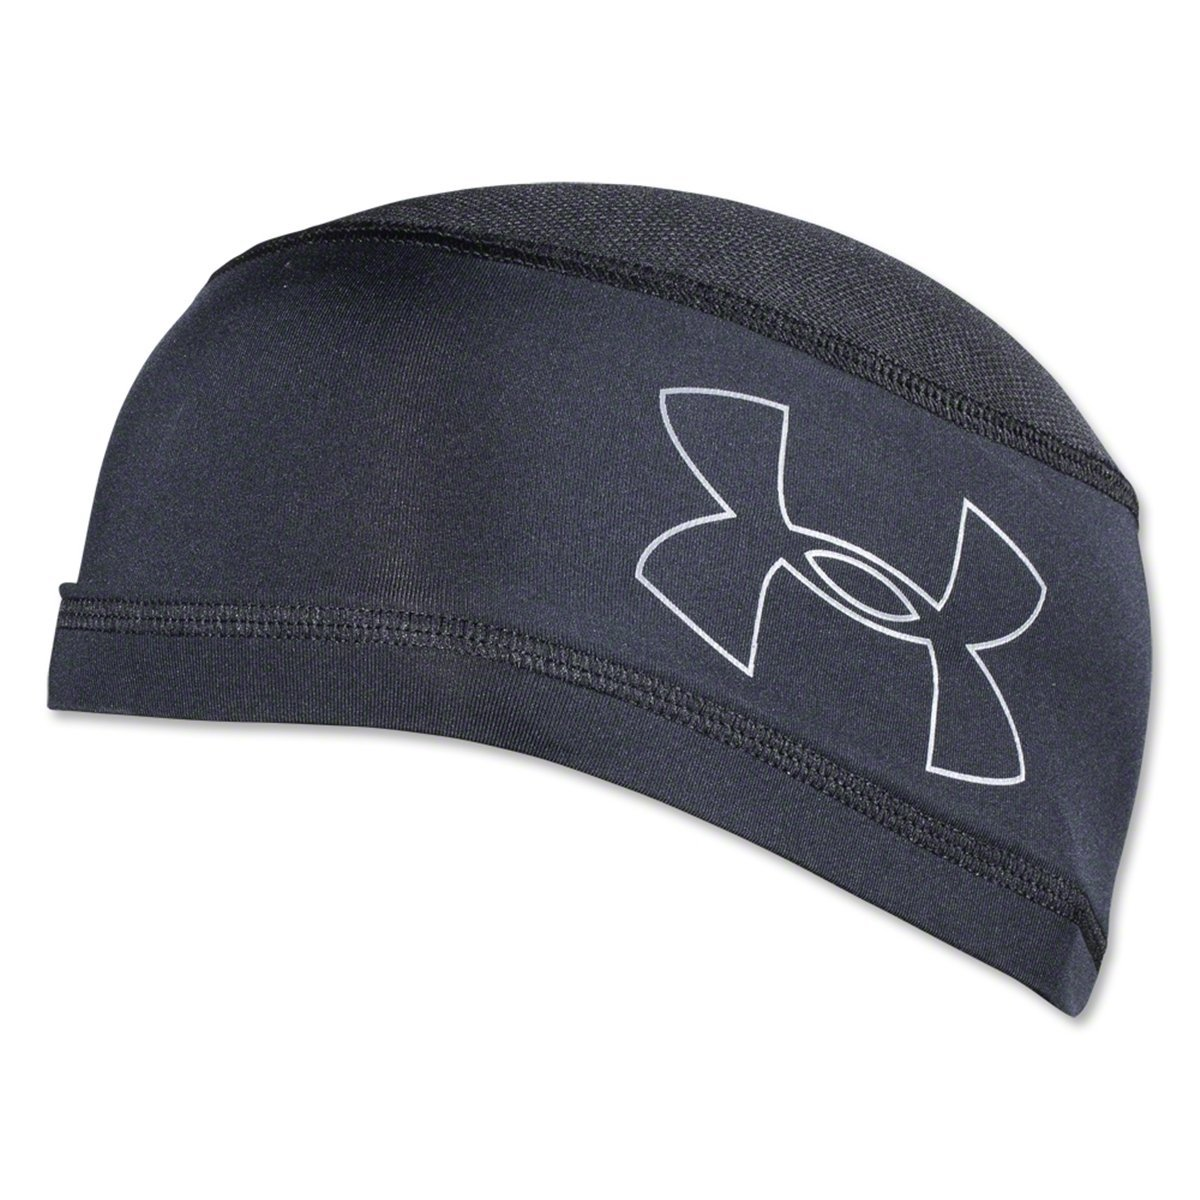 e1f5ca49197 Buy Under Armour Mesh II Skull Cap in Cheap Price on Alibaba.com